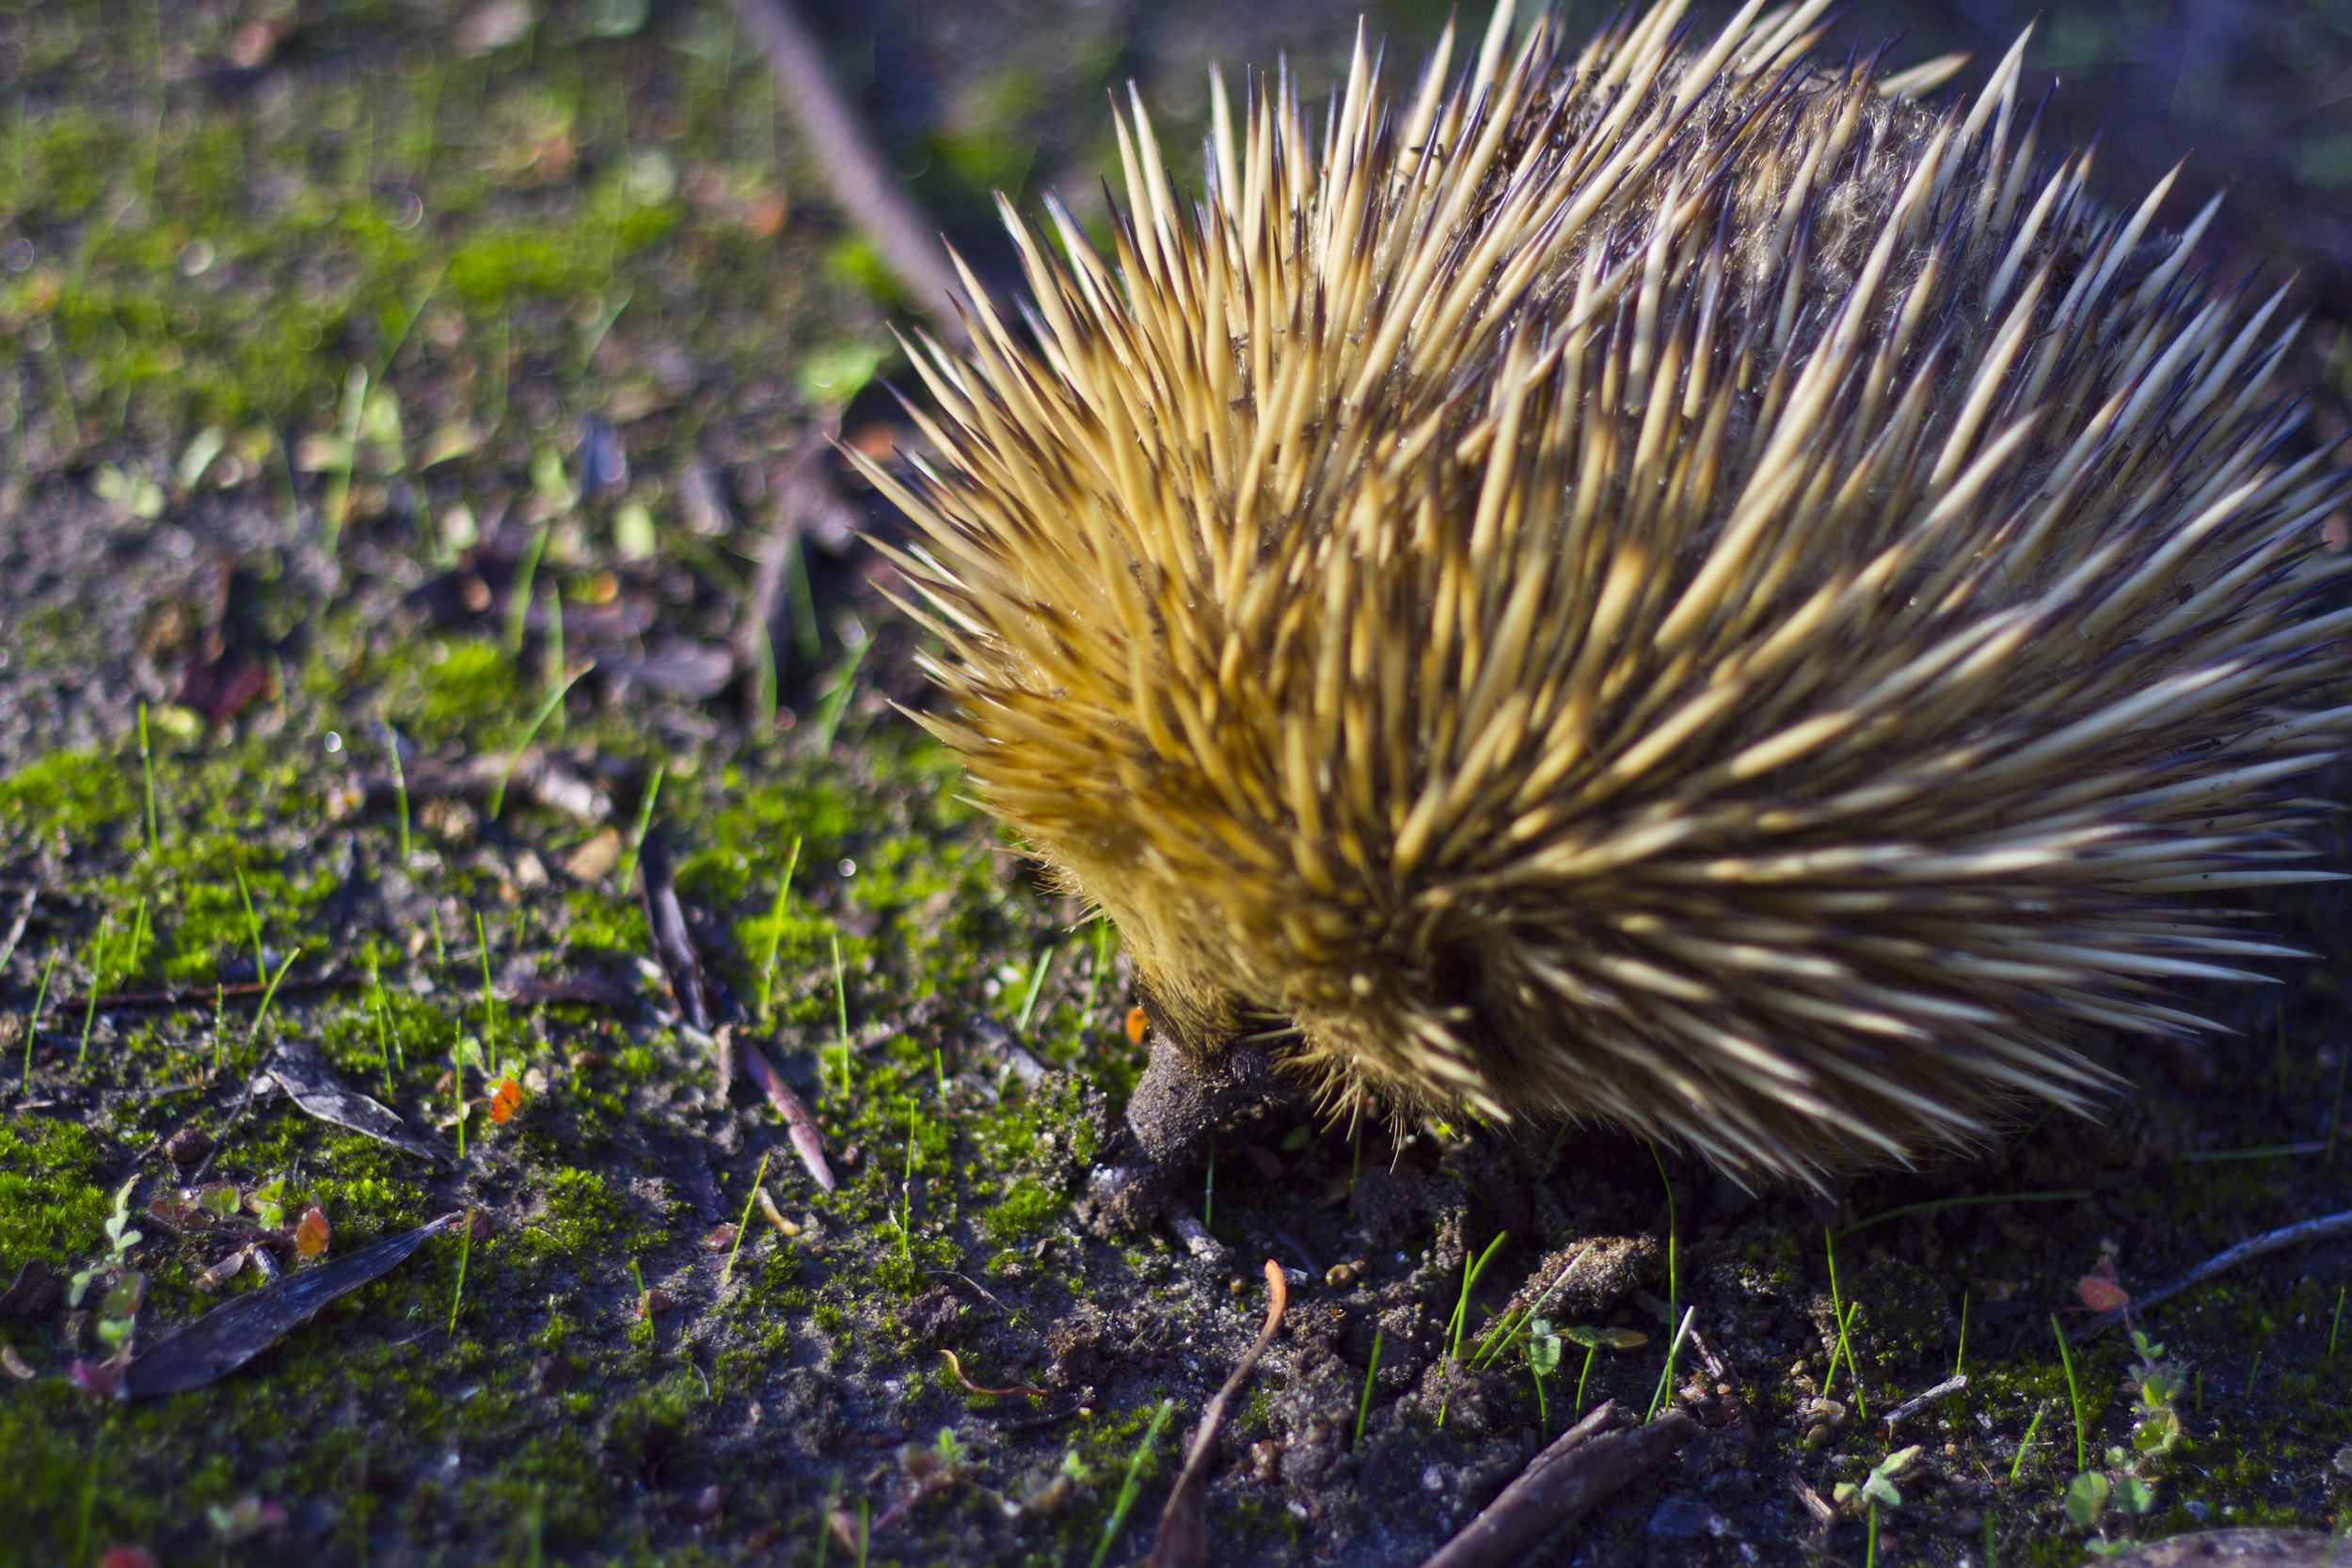 Short Beaked echidna searching for food.